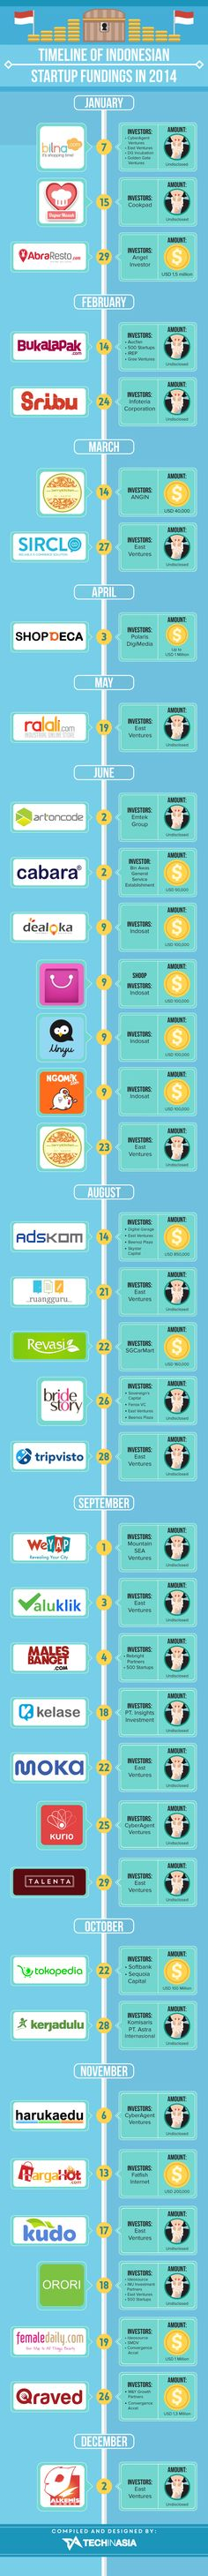 Here we go! 36 Indonesian startups who got funding in 2014 (INFOGRAPHIC)